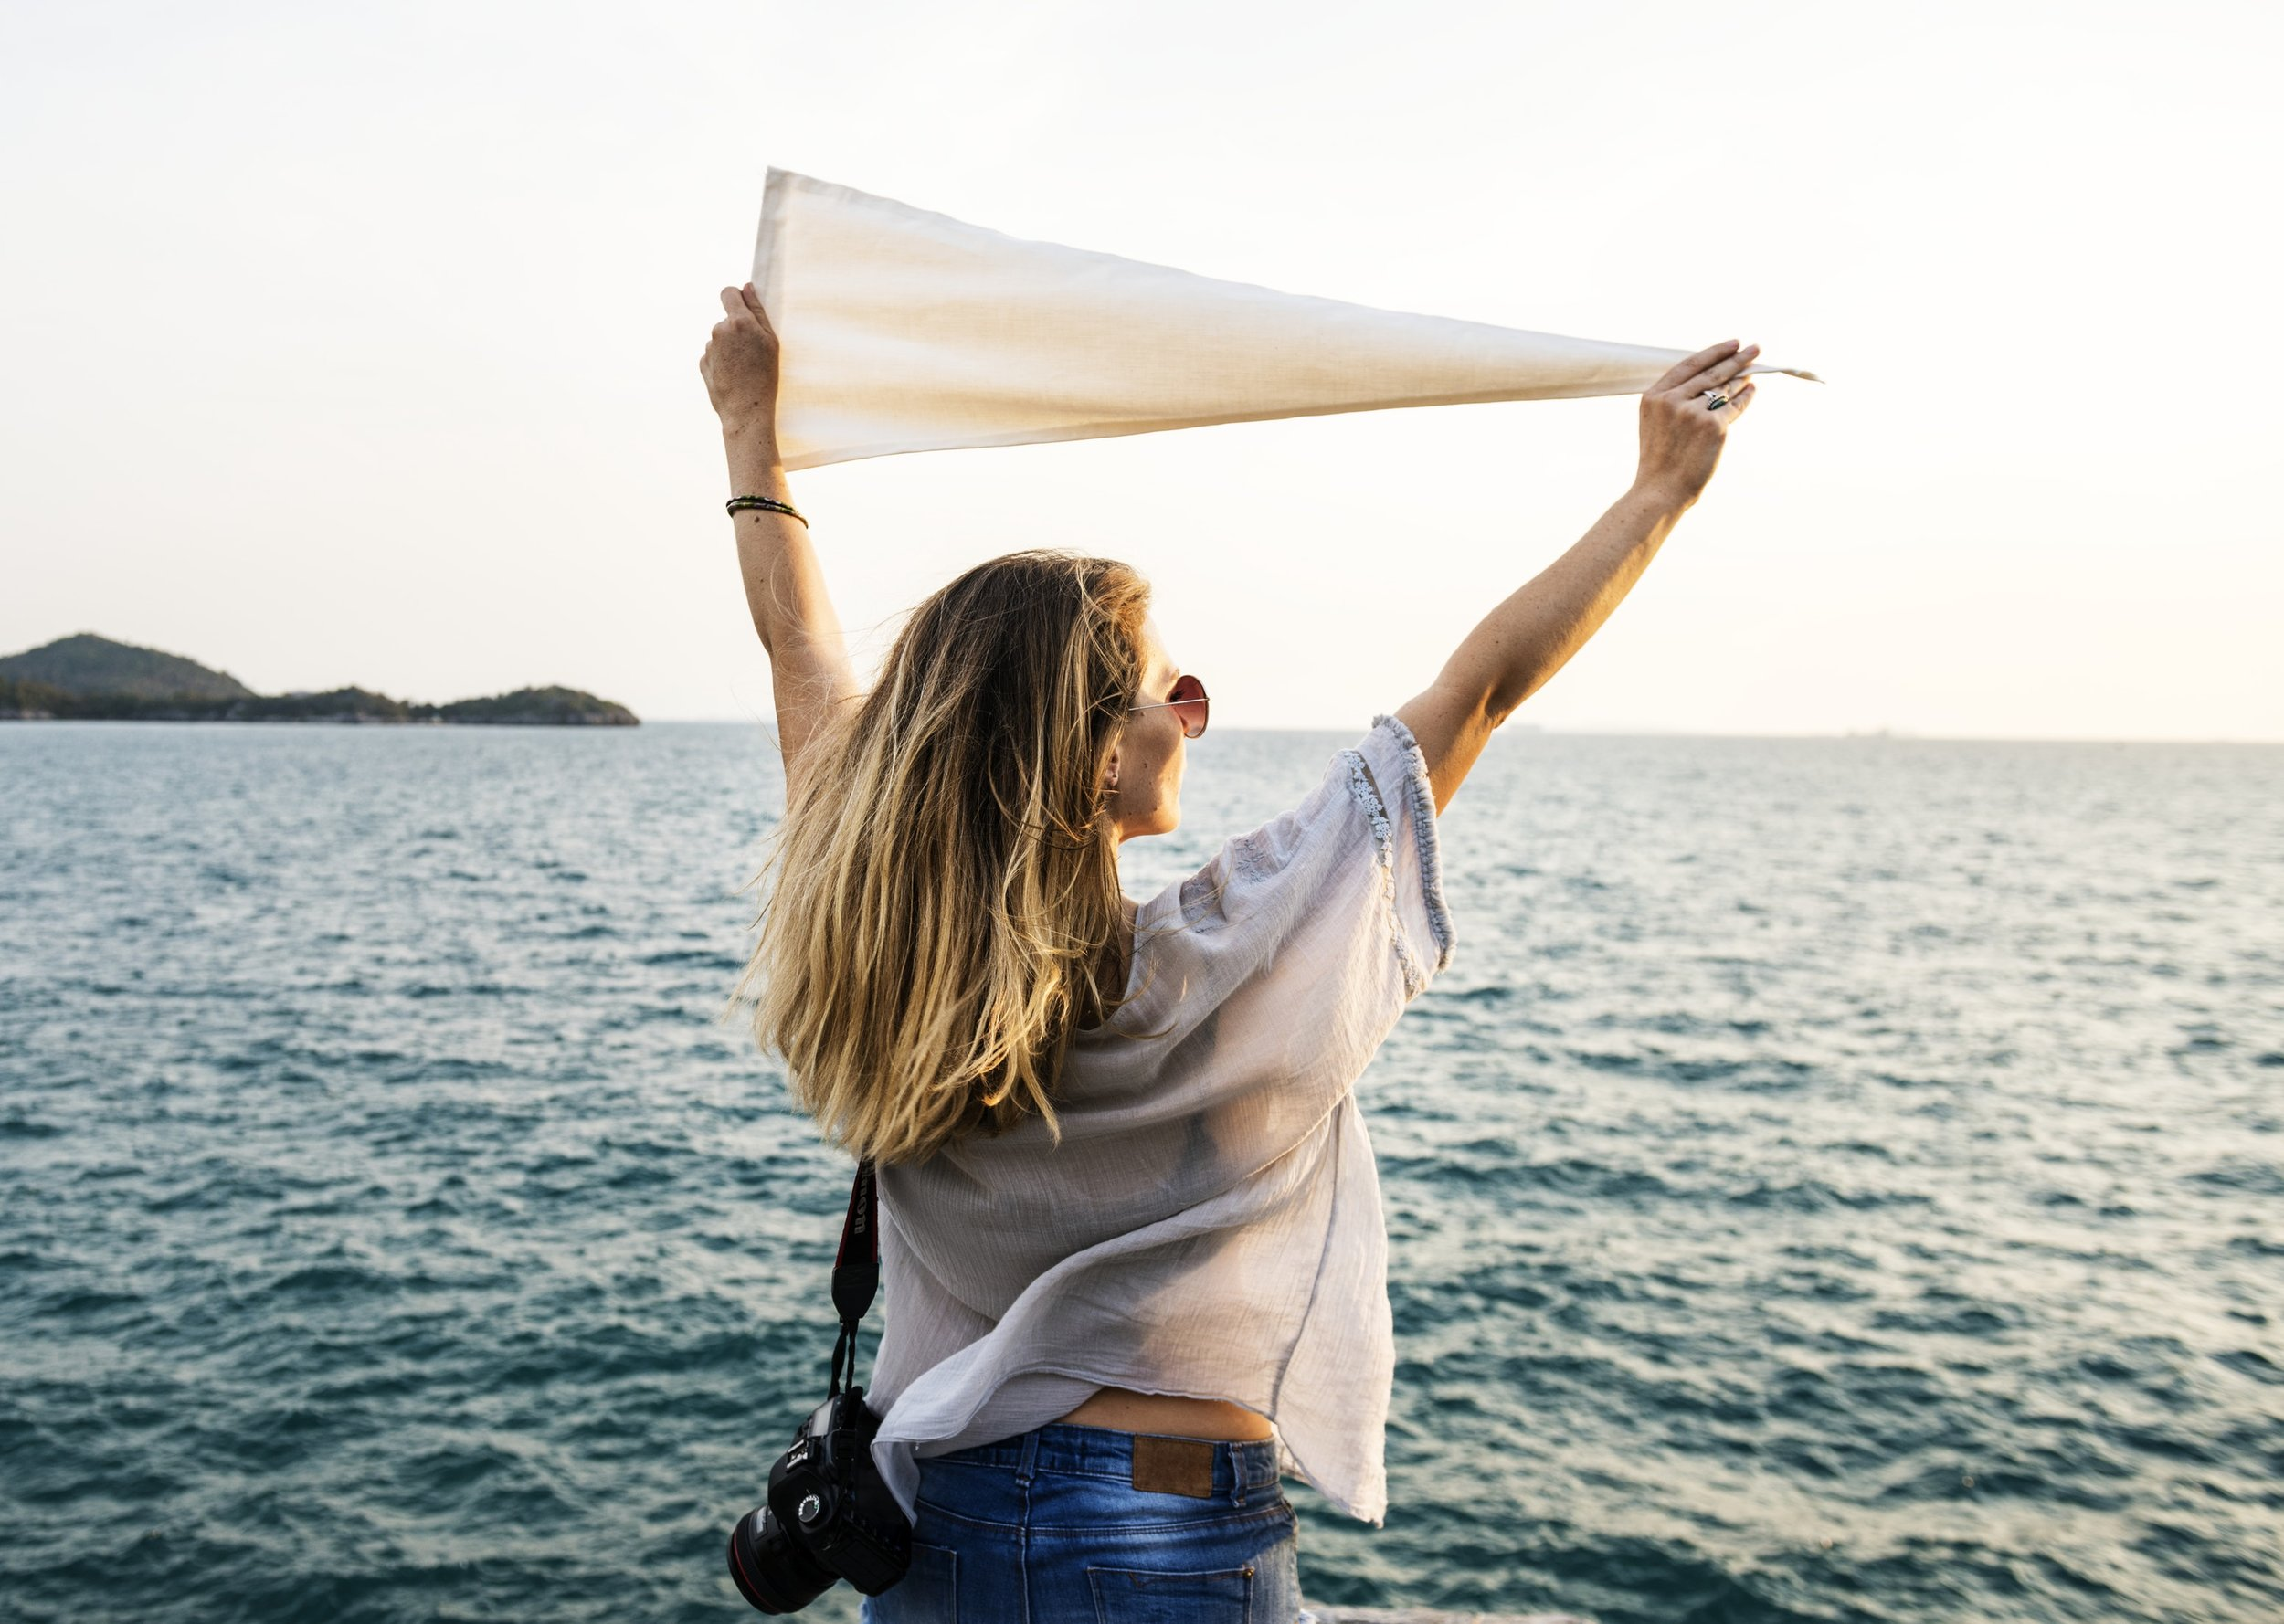 30 amazing life goals to make your thirties your best decade yet         [ Brightside ]